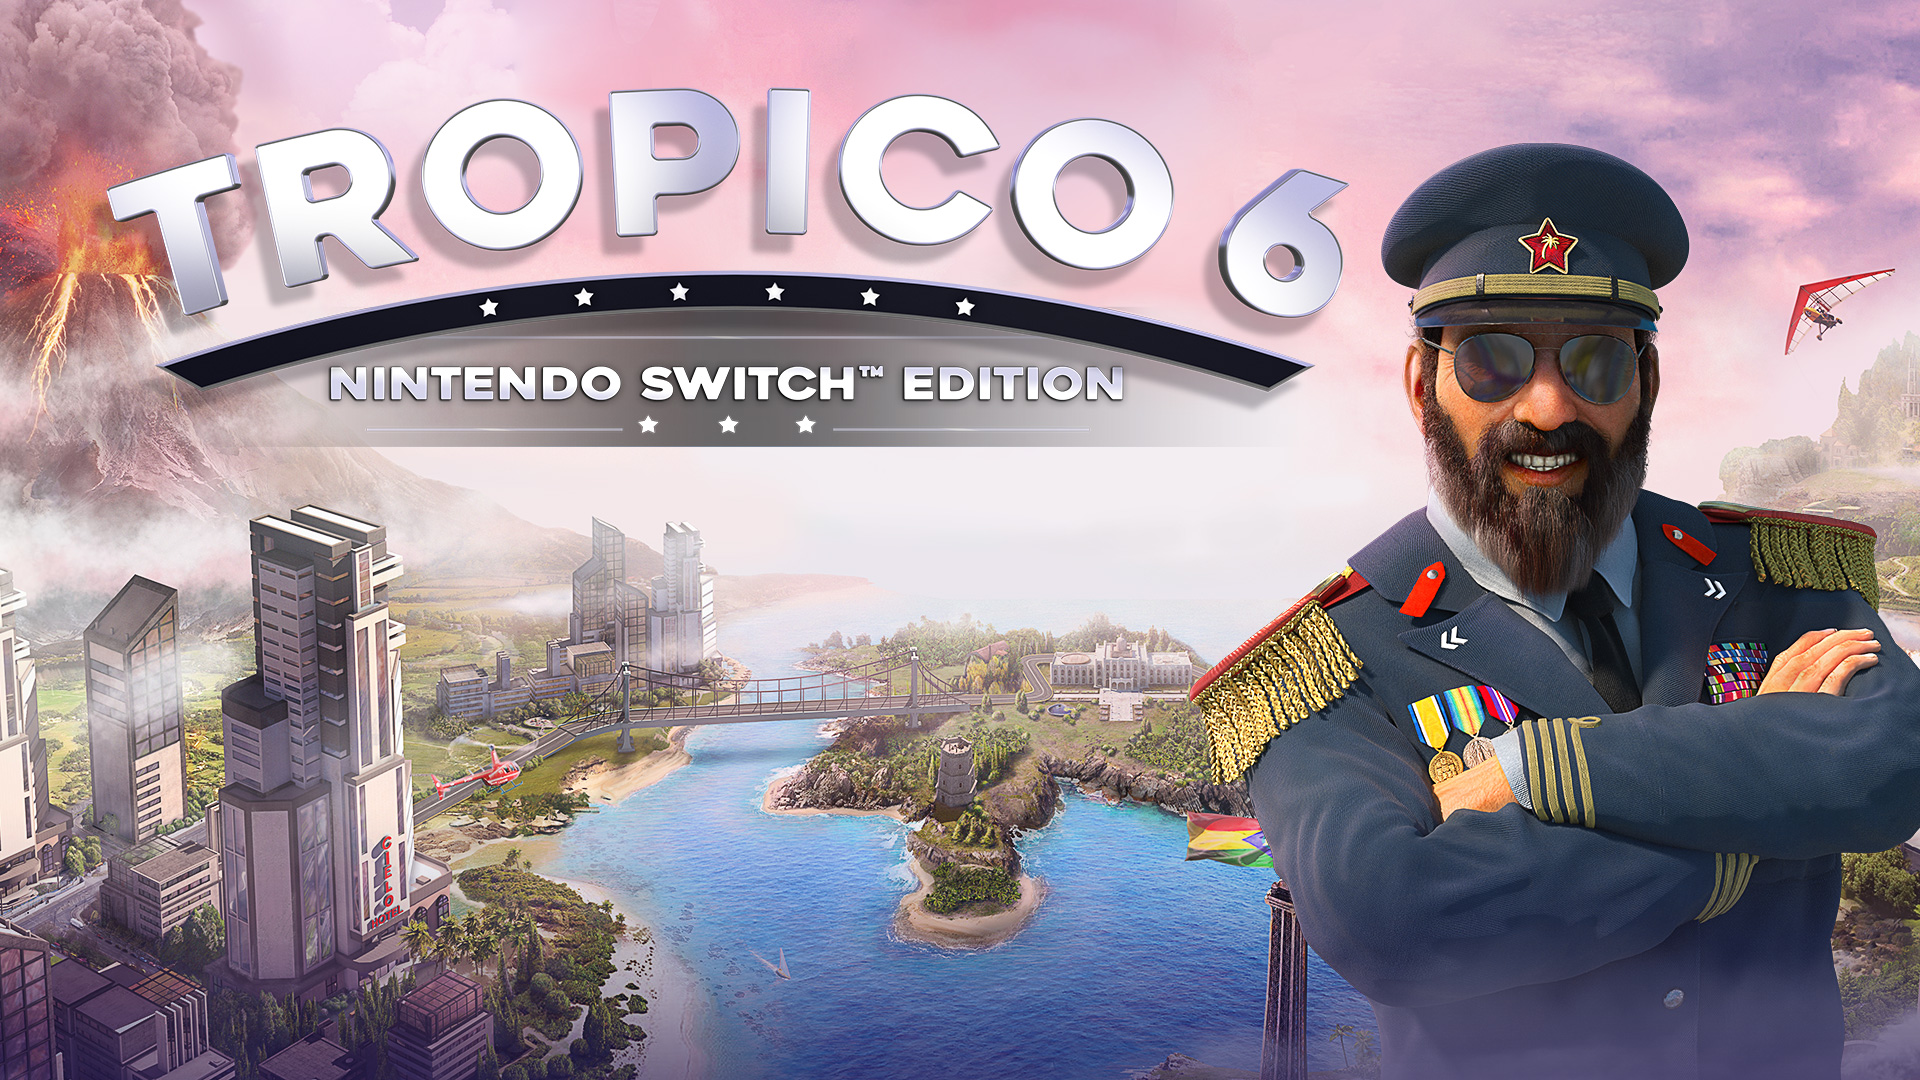 Tropico 6 – Nintendo Switch Edition: Declassified & Available Now